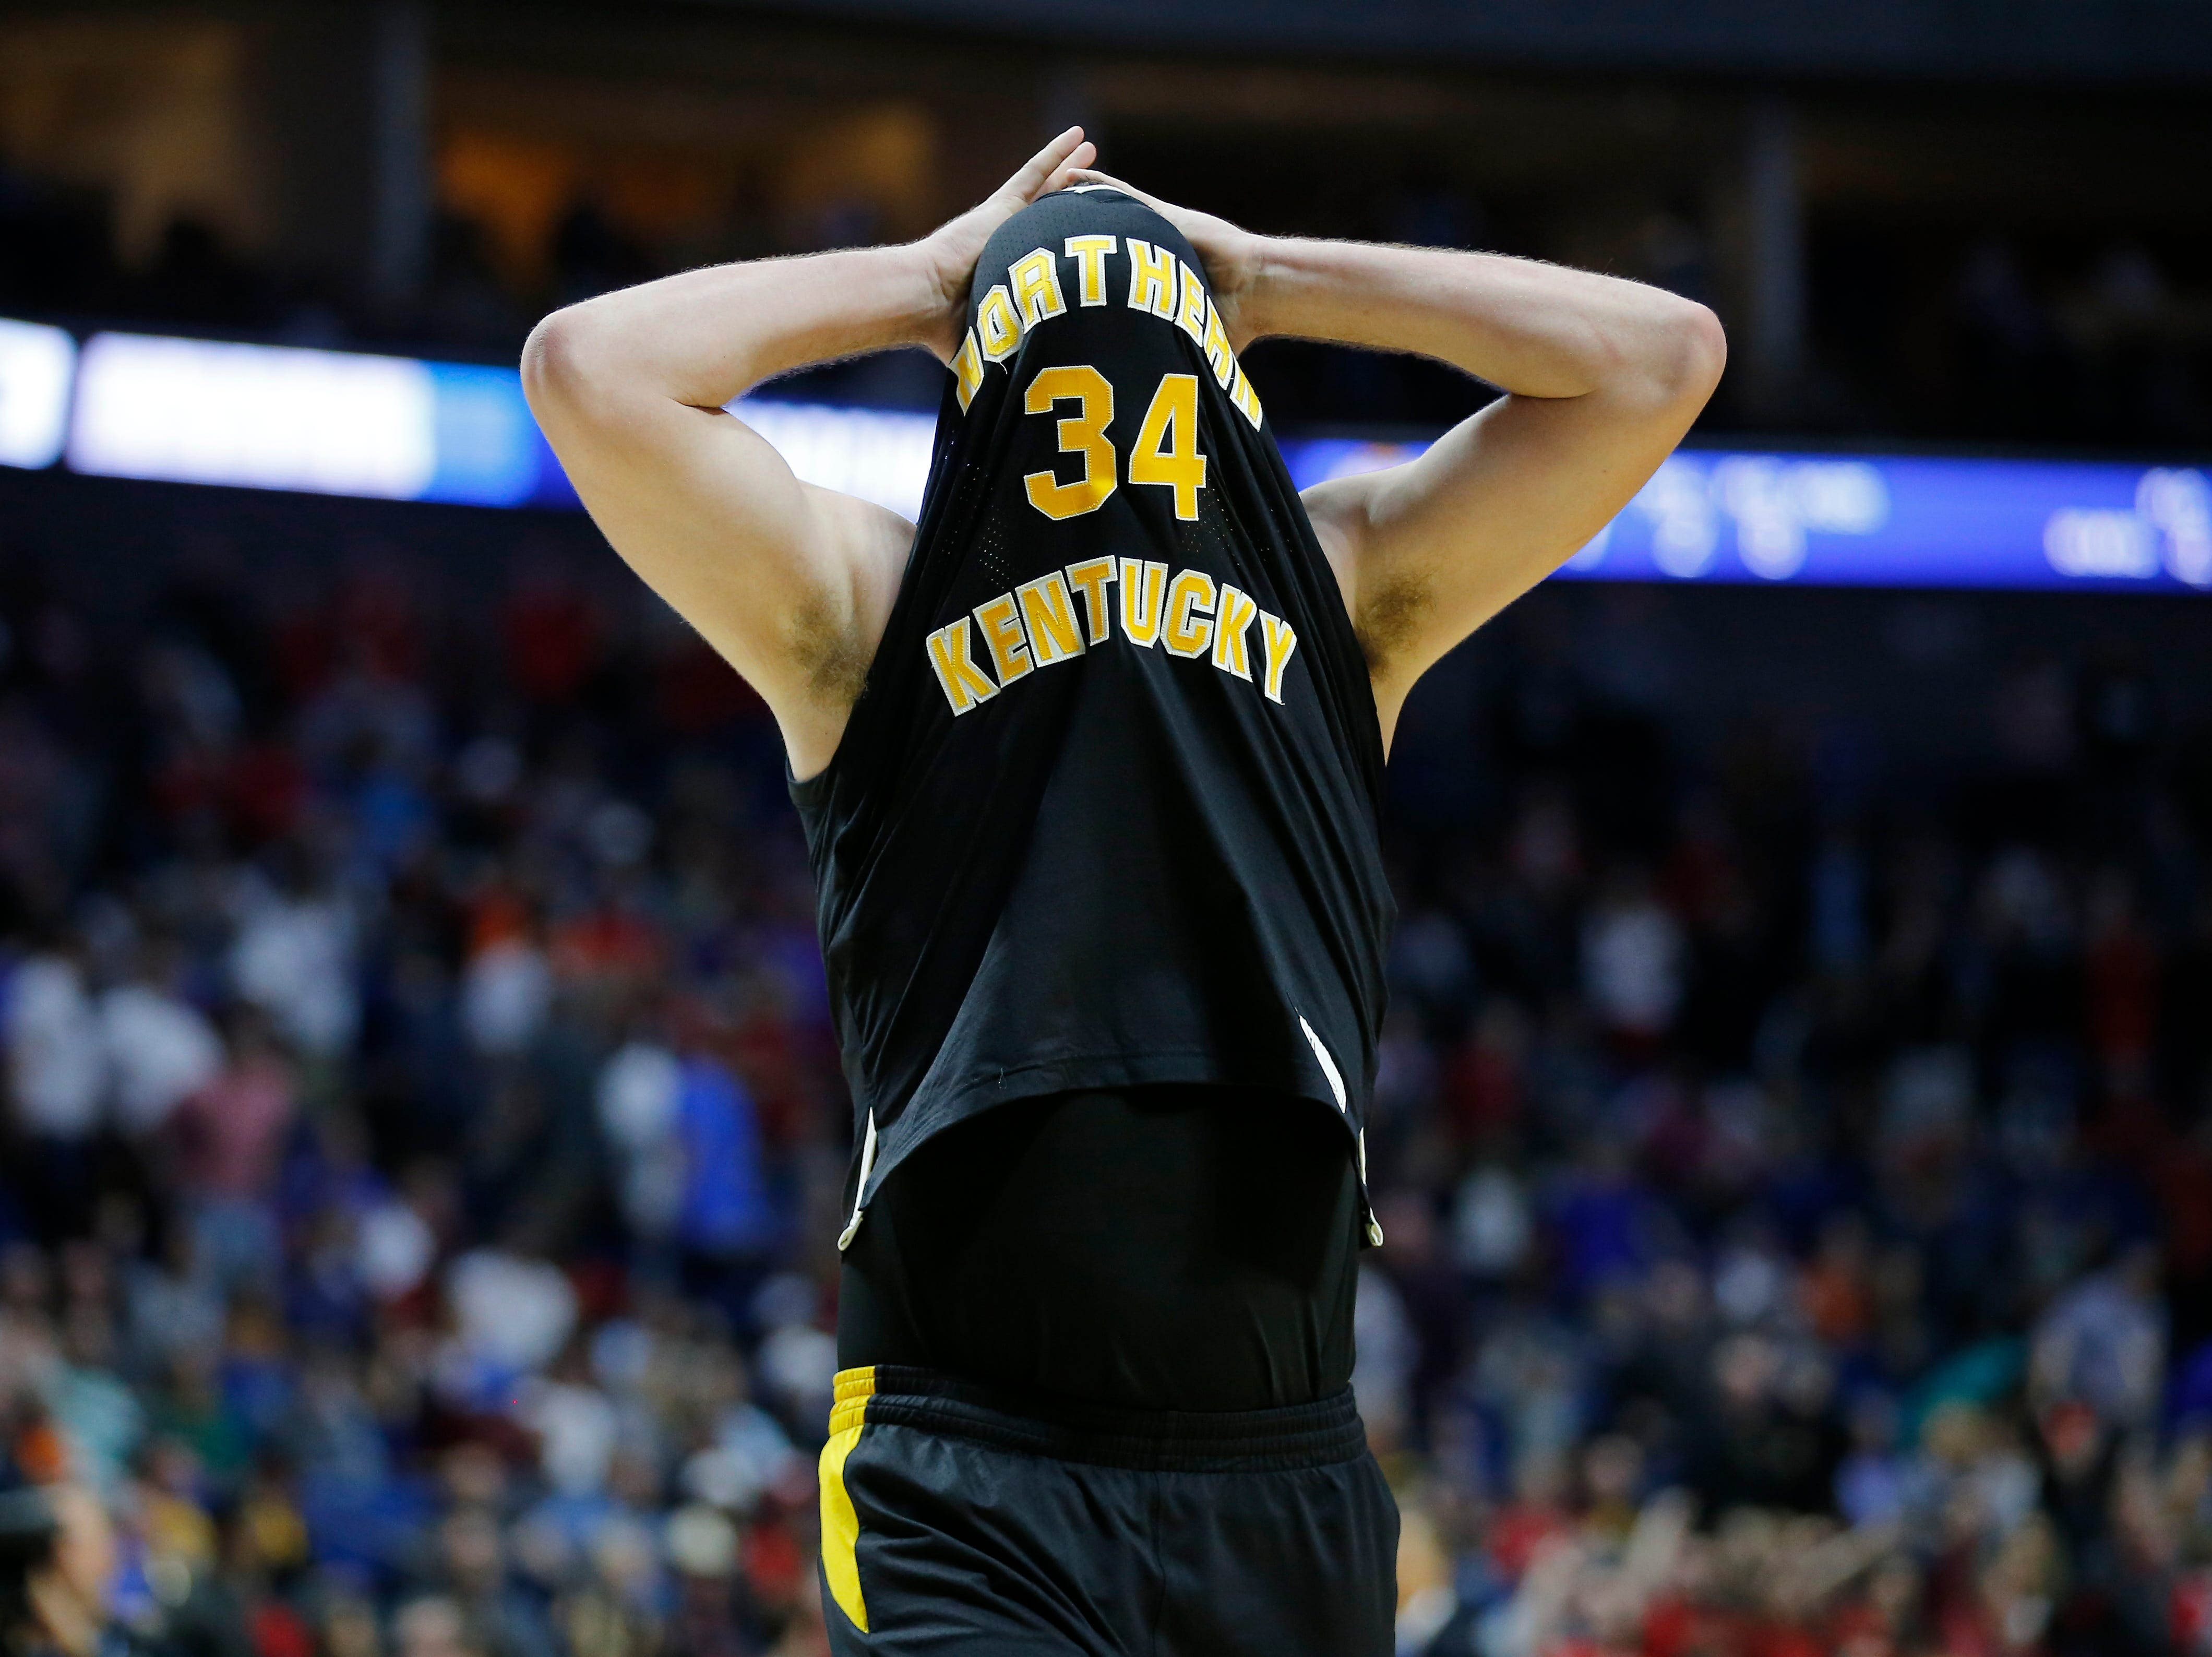 Northern Kentucky Norse forward Drew McDonald (34) untucks his shirt and heads for the locker room after the second half of the NCAA Tournament First Round game between the 14-seeded Northern Kentucky Norse and the 3-seeded Texas Tech Red Raiders the BOK Center in downtown Tulsa on Friday, March 22, 2019. NKU was knocked from the tournament with a 72-57 loss to the Red Raiders.